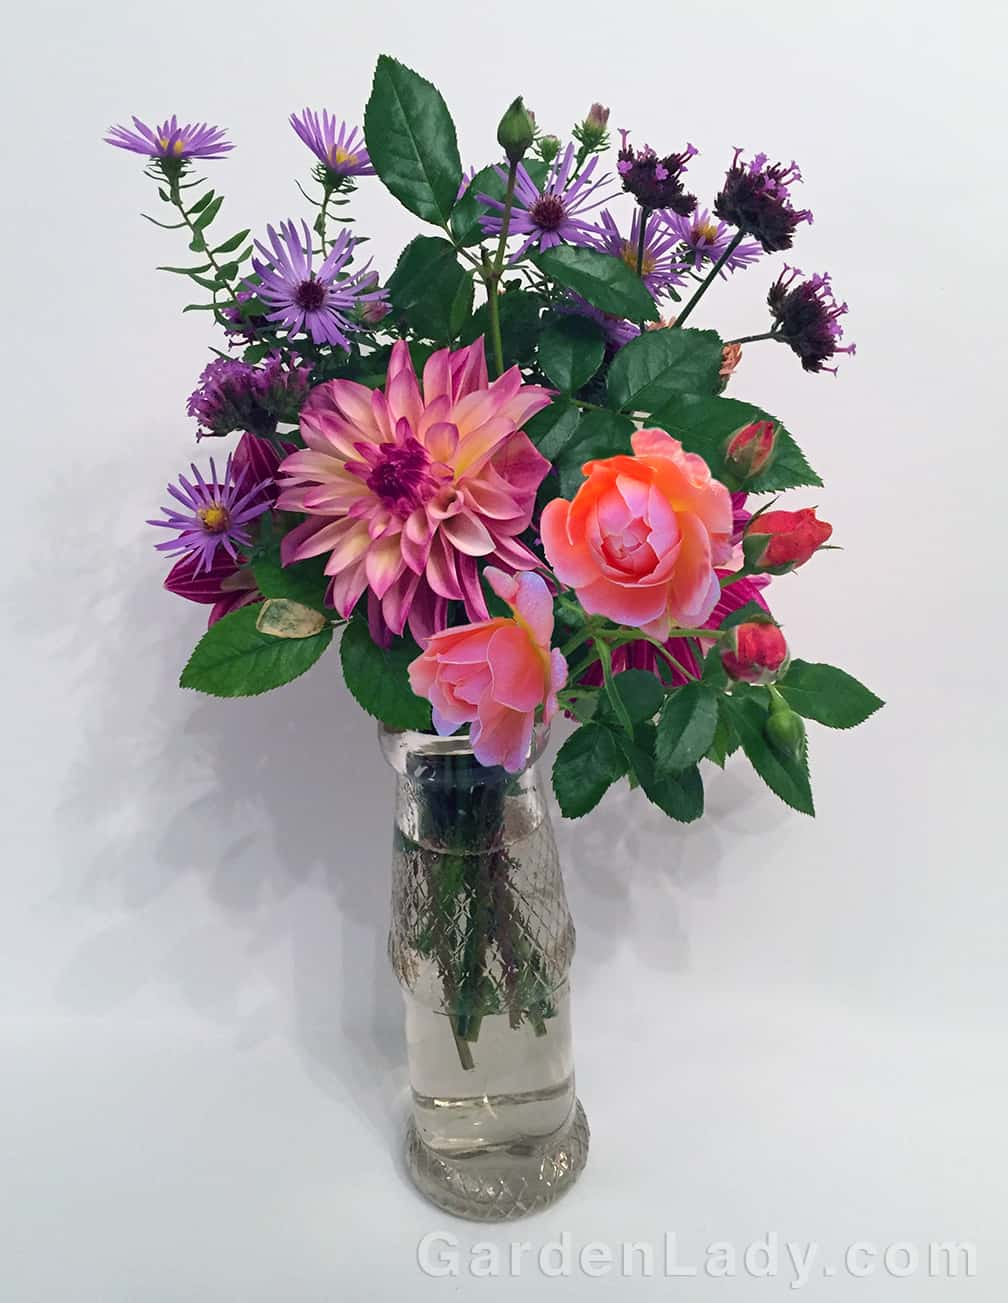 Adding magic and perfume to any bouquet: At Last Rose. How many shrub roses can you say that about?